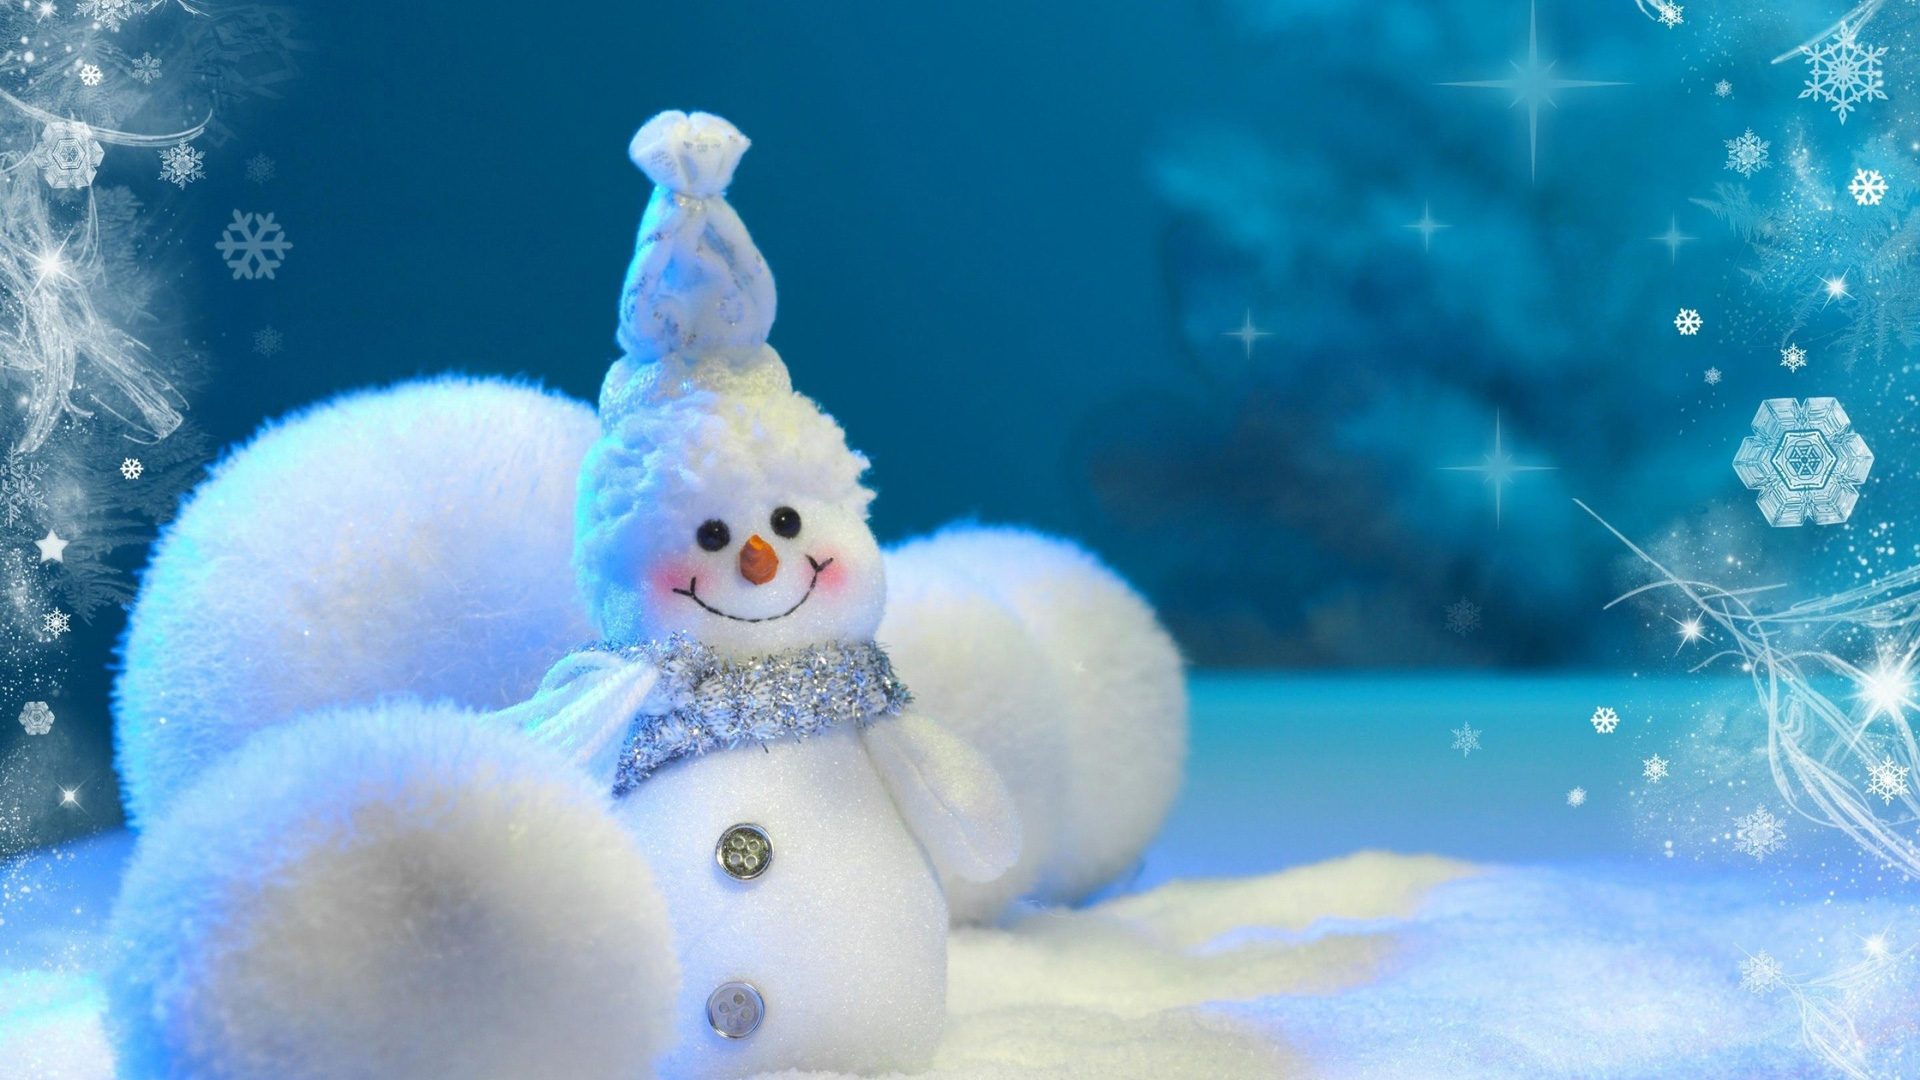 Download Wallpaper Cute Snowman high definition wallpaper 1080p 1920x1080